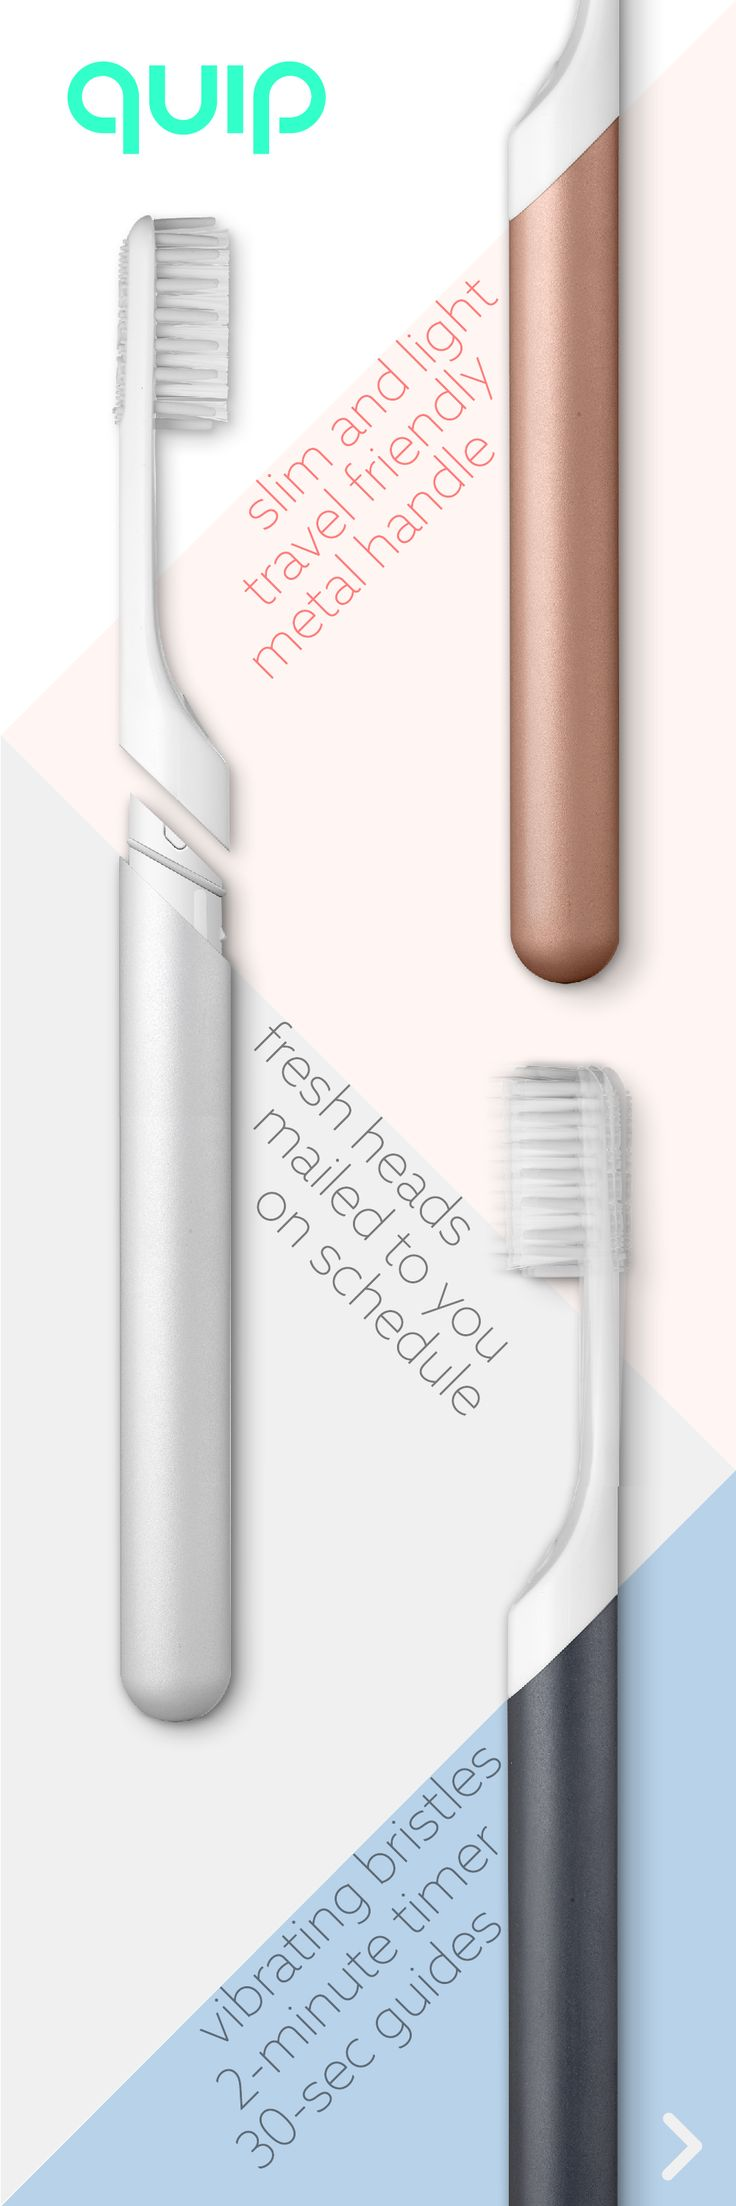 Whether on the go or at home, maintaining a healthy smile has never been more convenient! The quip electric toothbrush helps you 1) Forget about trips to the store thanks to $5 brush head refills delivered every 3 months 2) Brush gently with vibrating bristles and 2 minute timer to ensure a dentist ready clean 3) Boost your bathroom style thanks to our slim metal design and included travel cover/wall mount! (you'll want to pick it up twice a day!) quip - oral care simplified. Starting at…